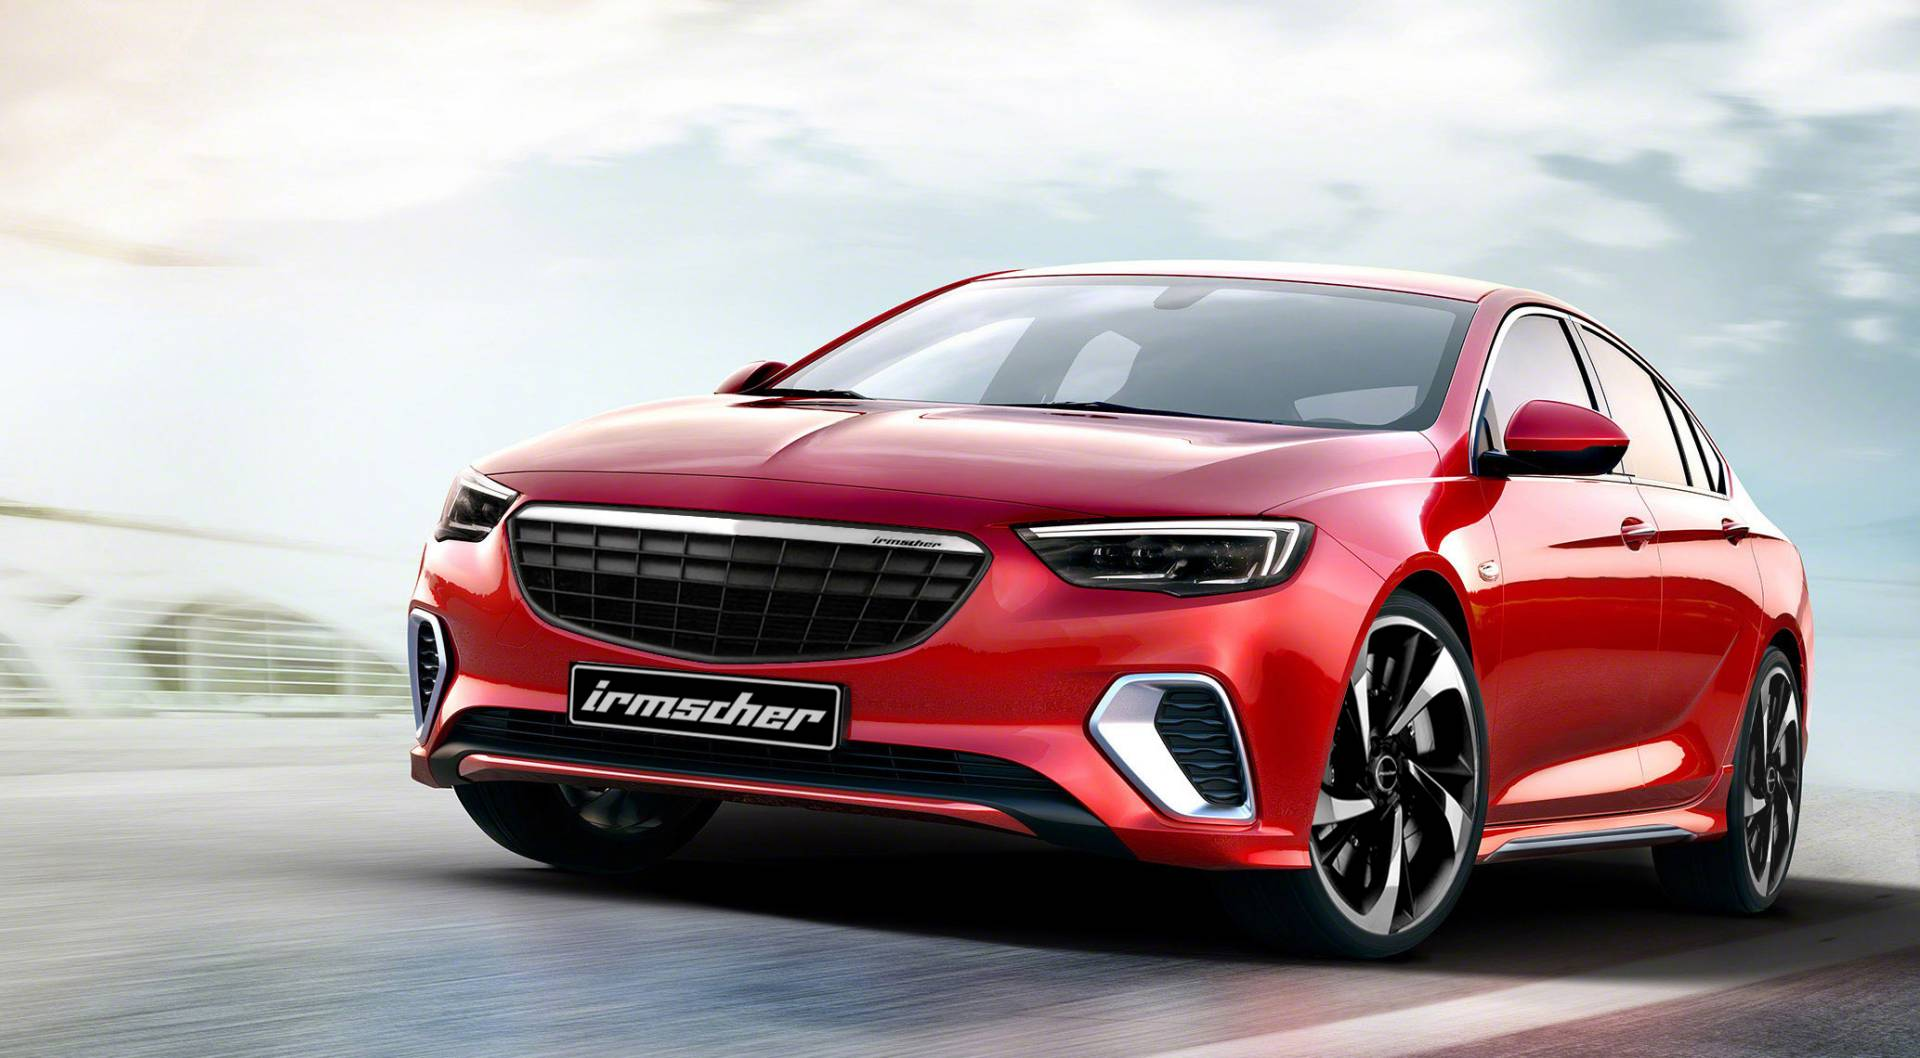 5823343f-opel-insignia-gsi-with-irmscher-sport-package-3